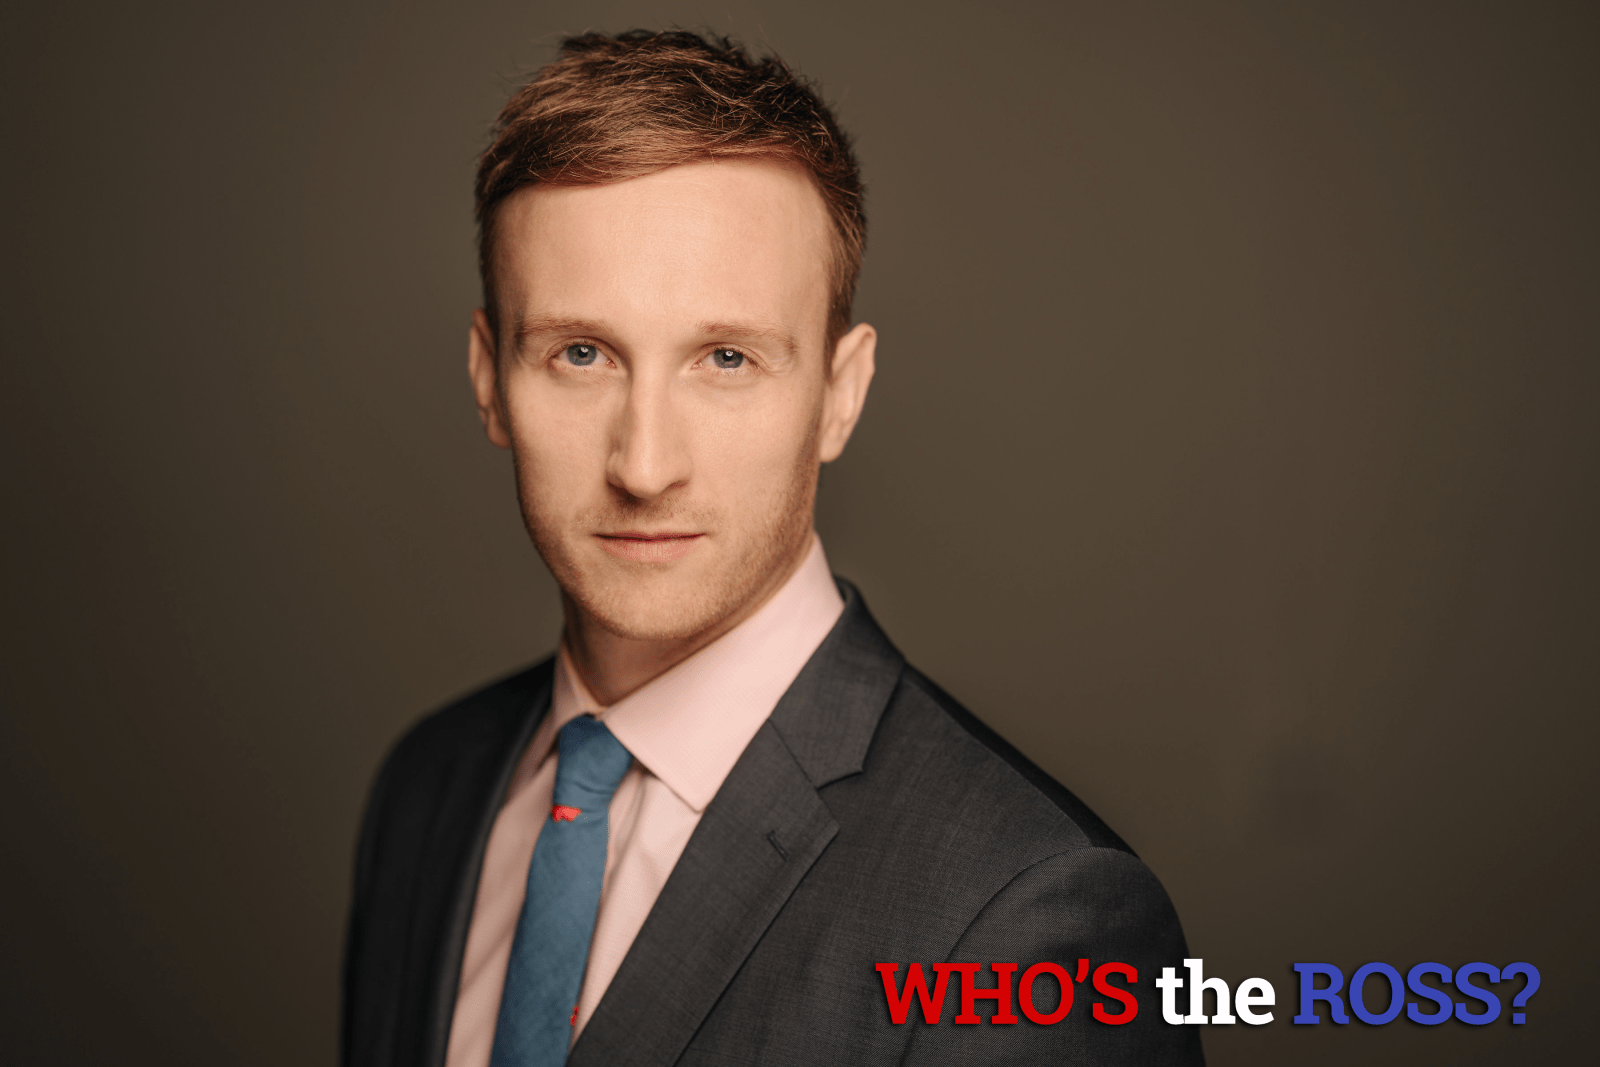 """""""Who's the Ross?"""" Aaron Ross Portland Oregon comedian funny host late-night talk show sketch improv best"""